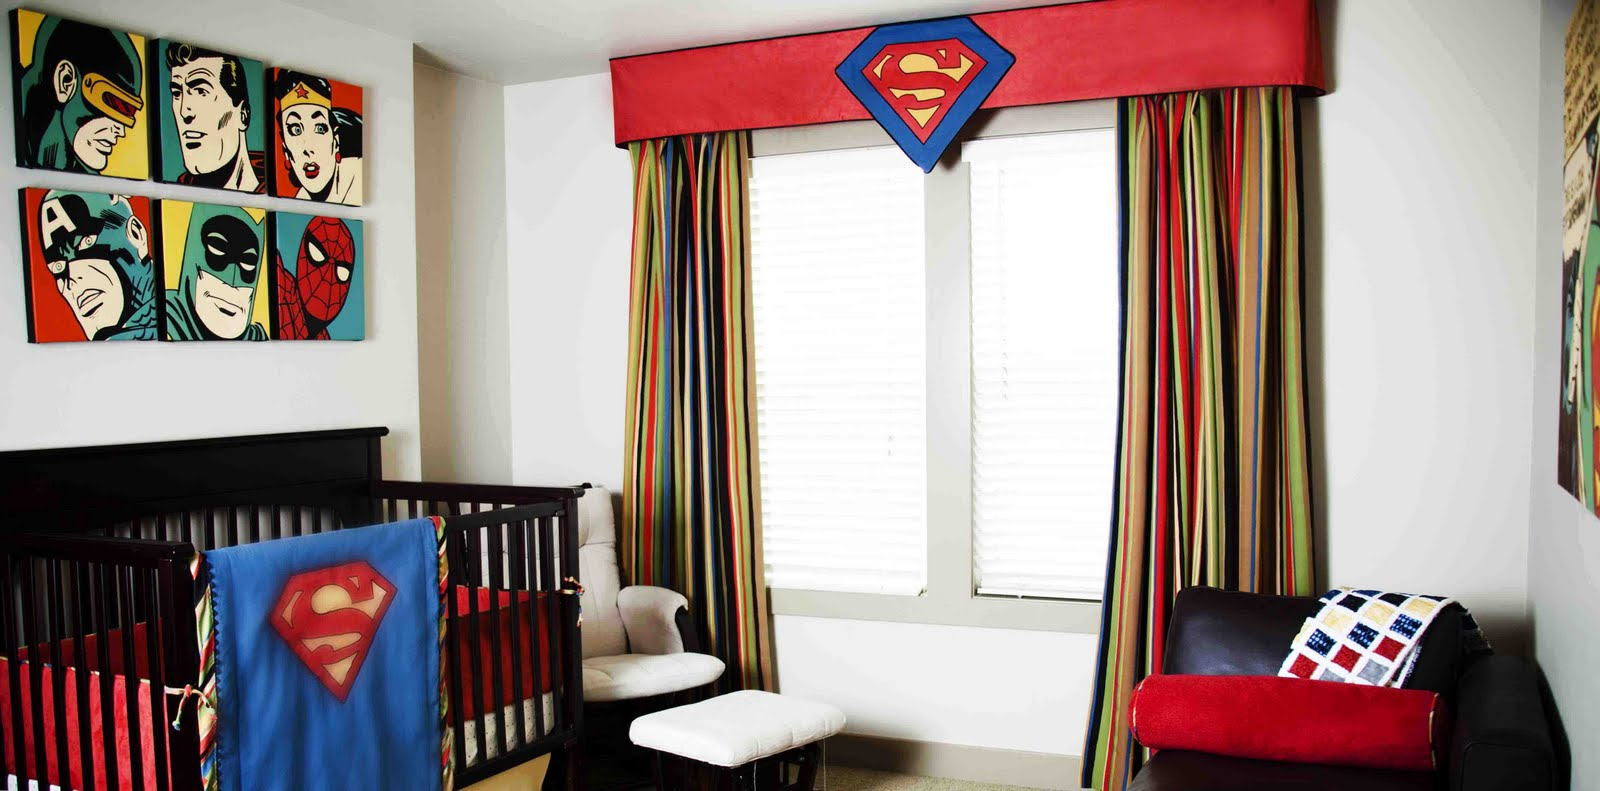 Marvelous Nursery Curtains On View When Walking Through The Door. The Curtains,  Superman Blanket .